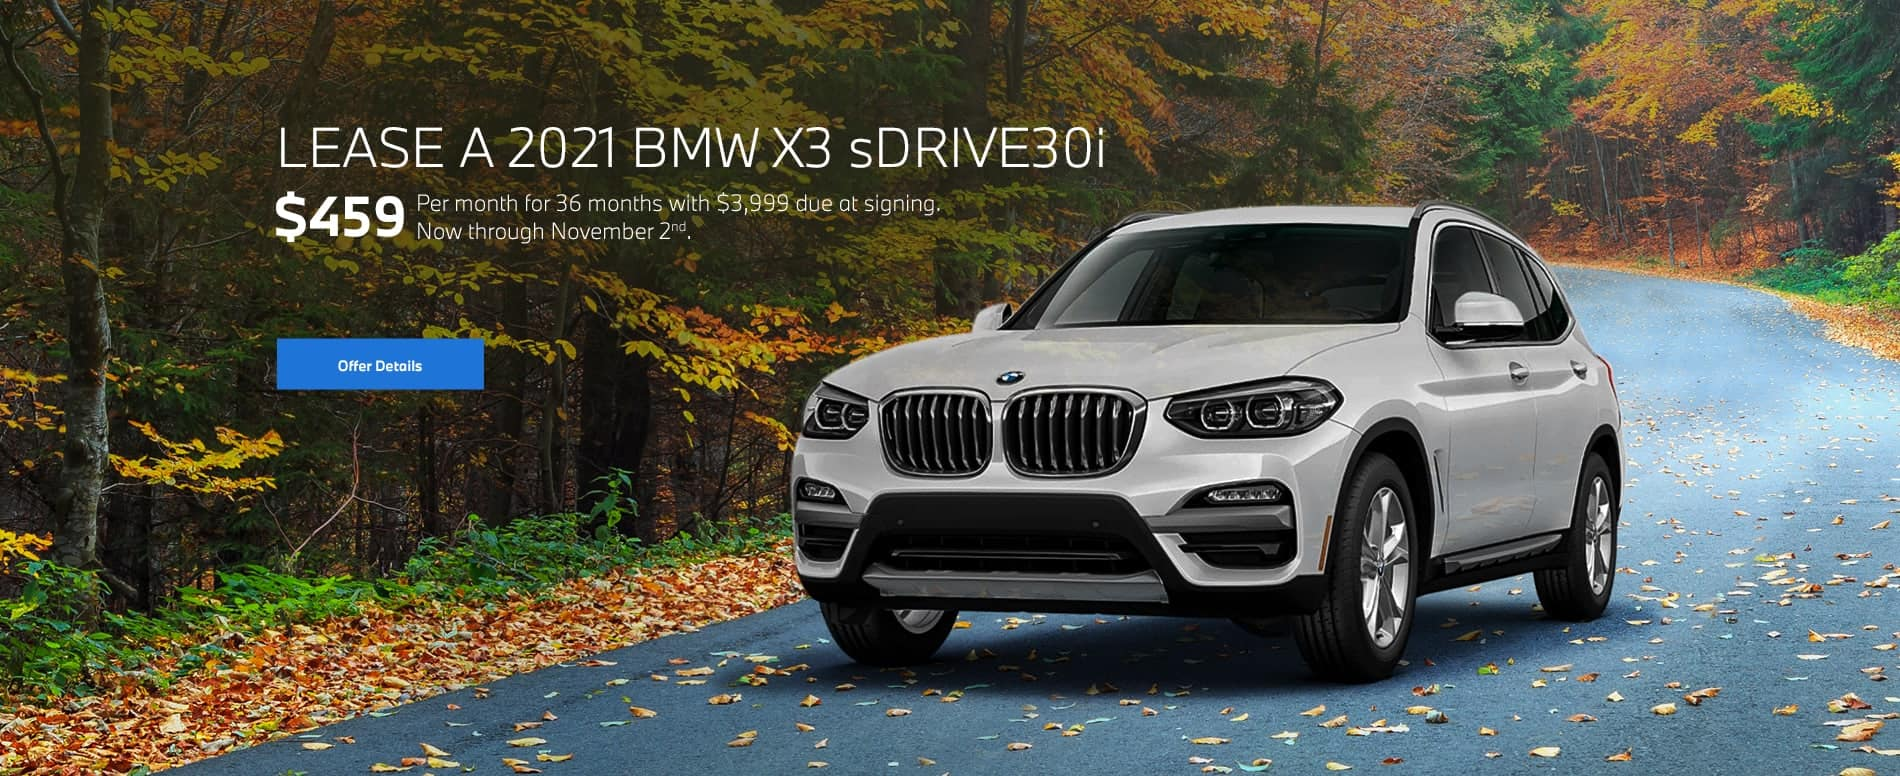 2021 BMW X3 sDrive30i Lease